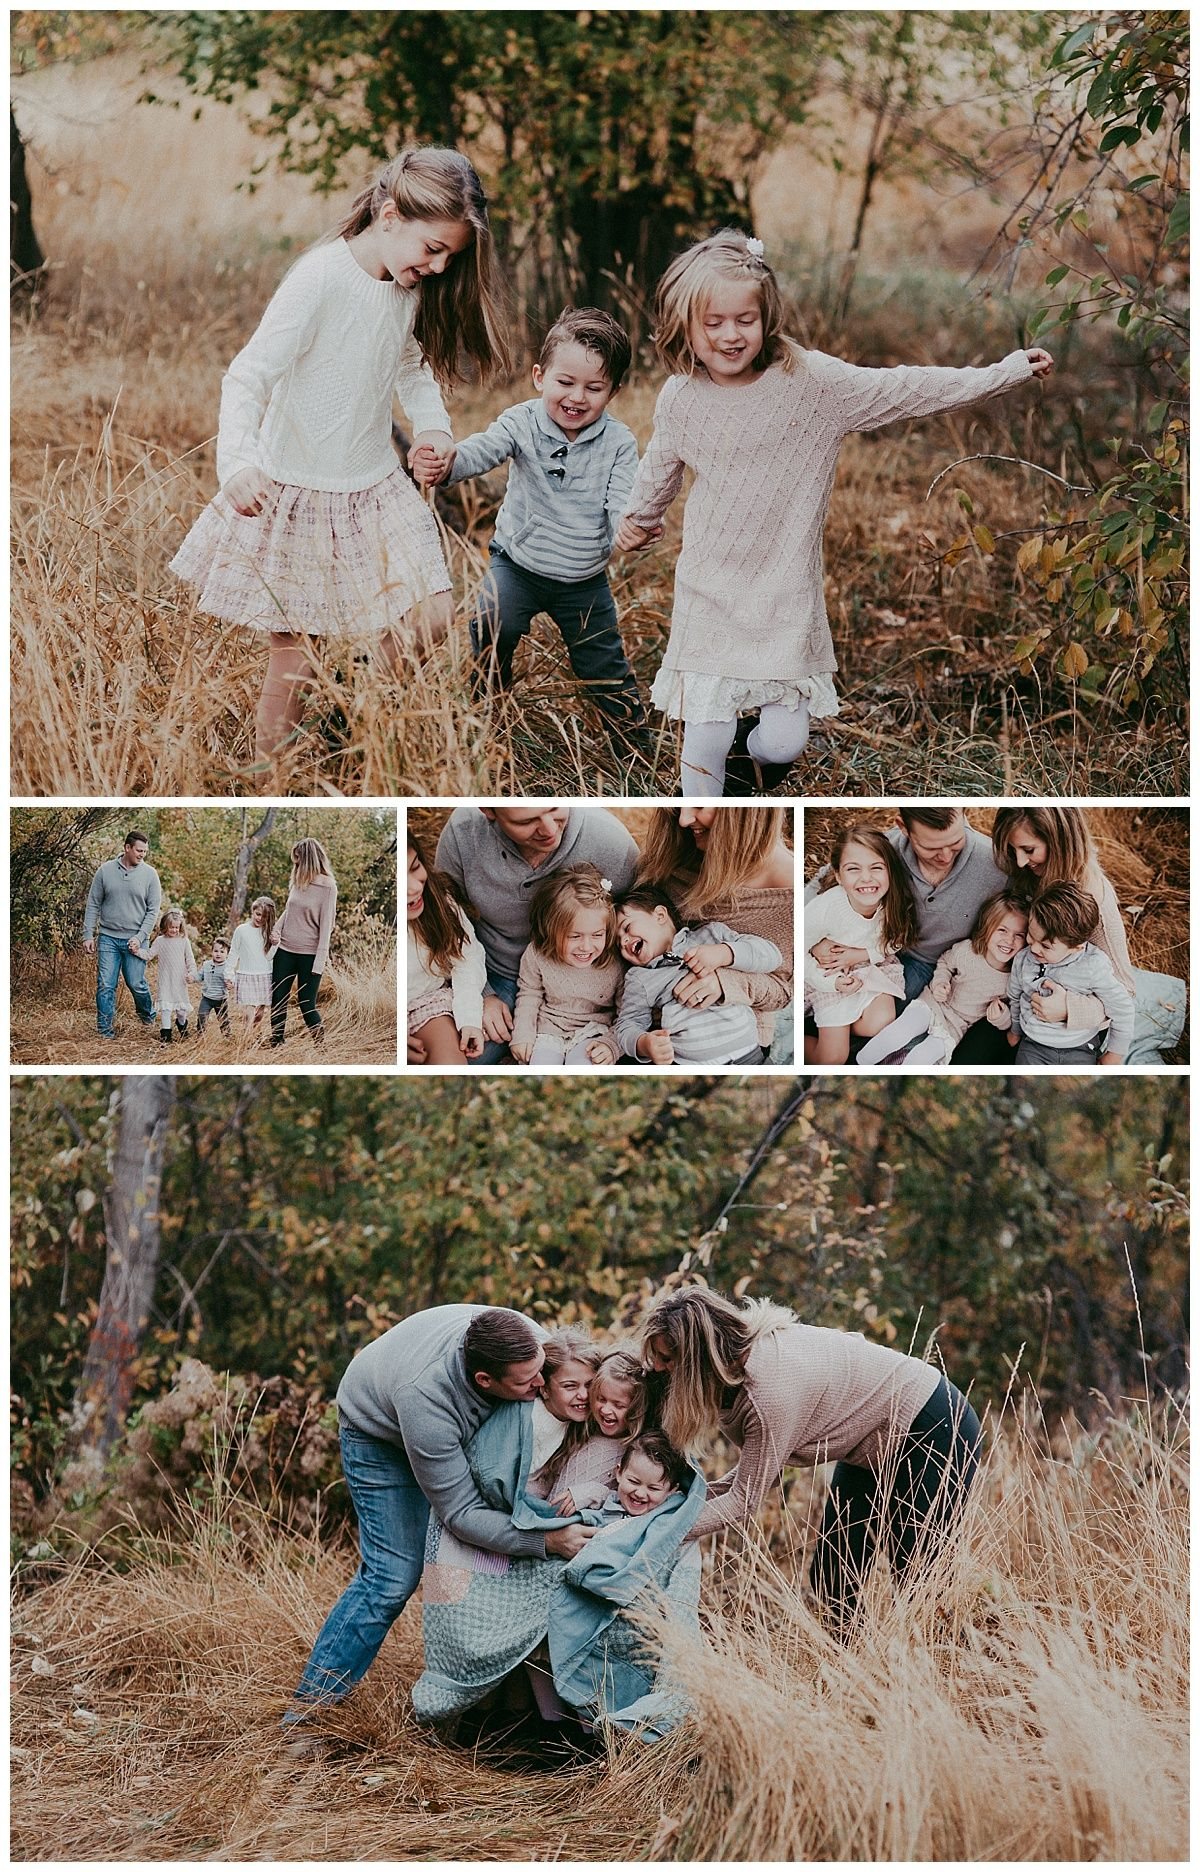 Family Photo outfit inspo Brina Debalinhard Photography #familyphotooutfits